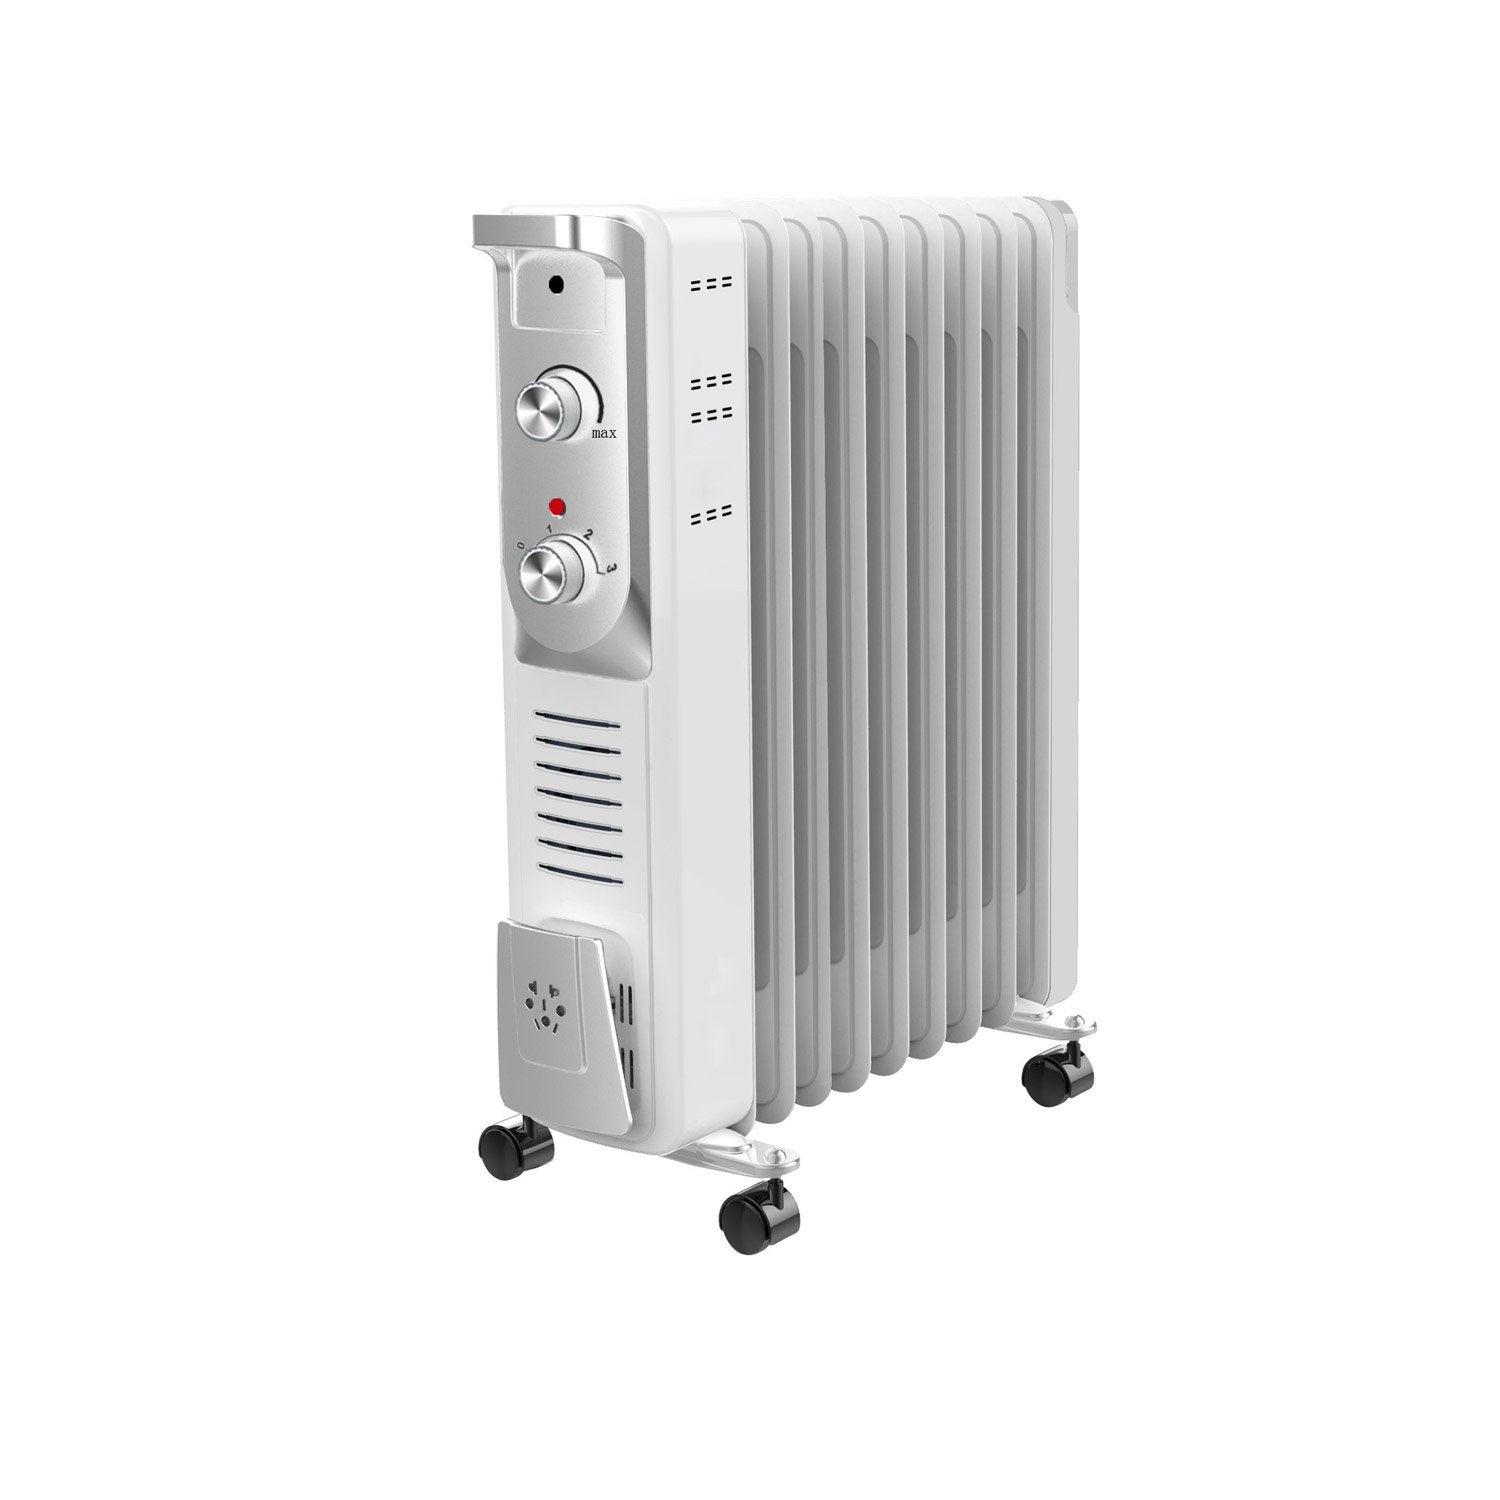 radiateur bain d 39 huile lectrique equation olea 2000 w leroy merlin. Black Bedroom Furniture Sets. Home Design Ideas